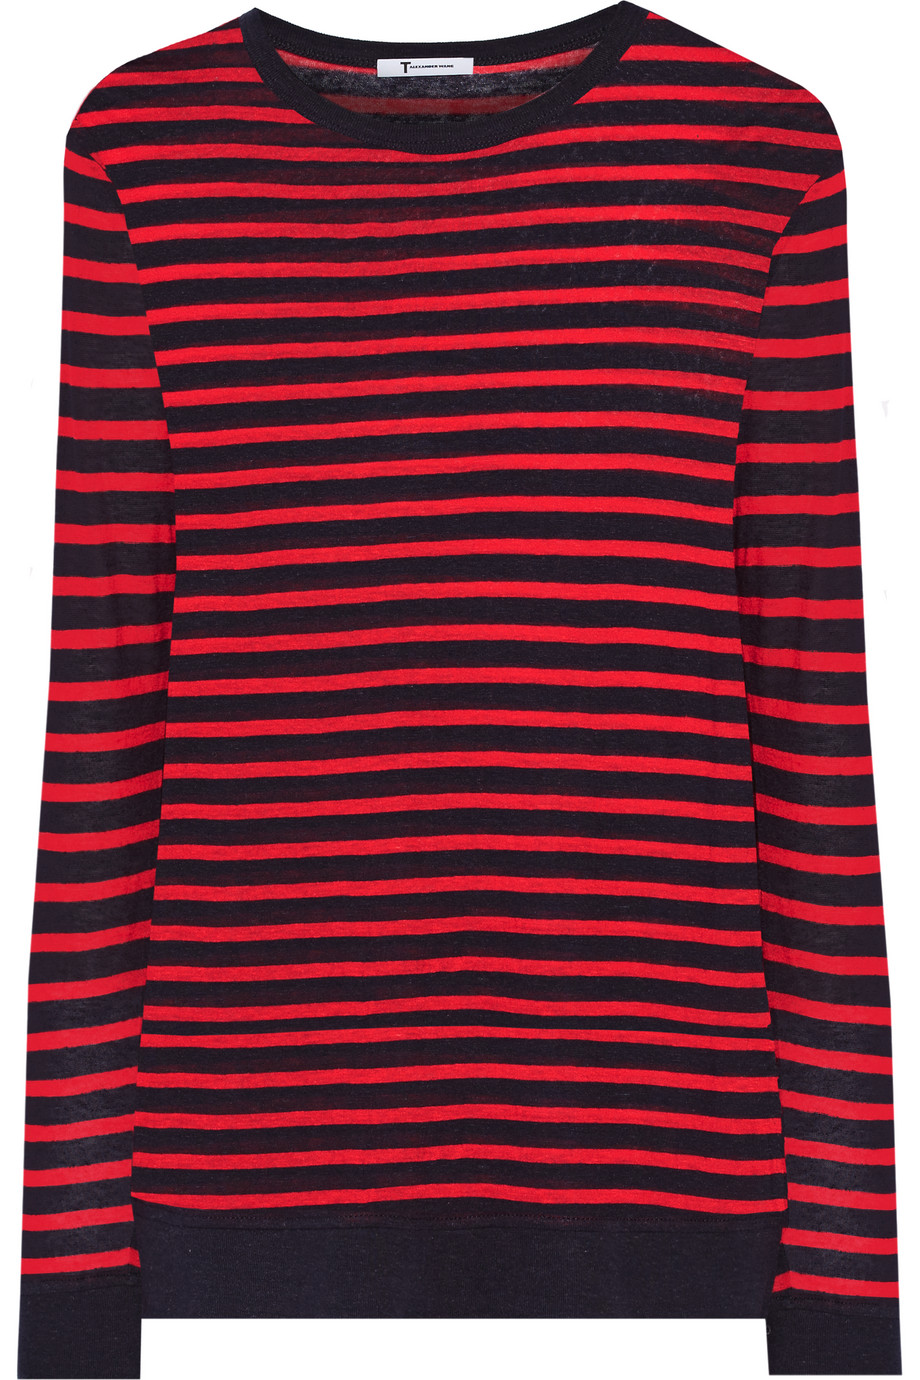 Striped Knitted Sweater, T by Alexander Wang, Red, Women's, Size: XS